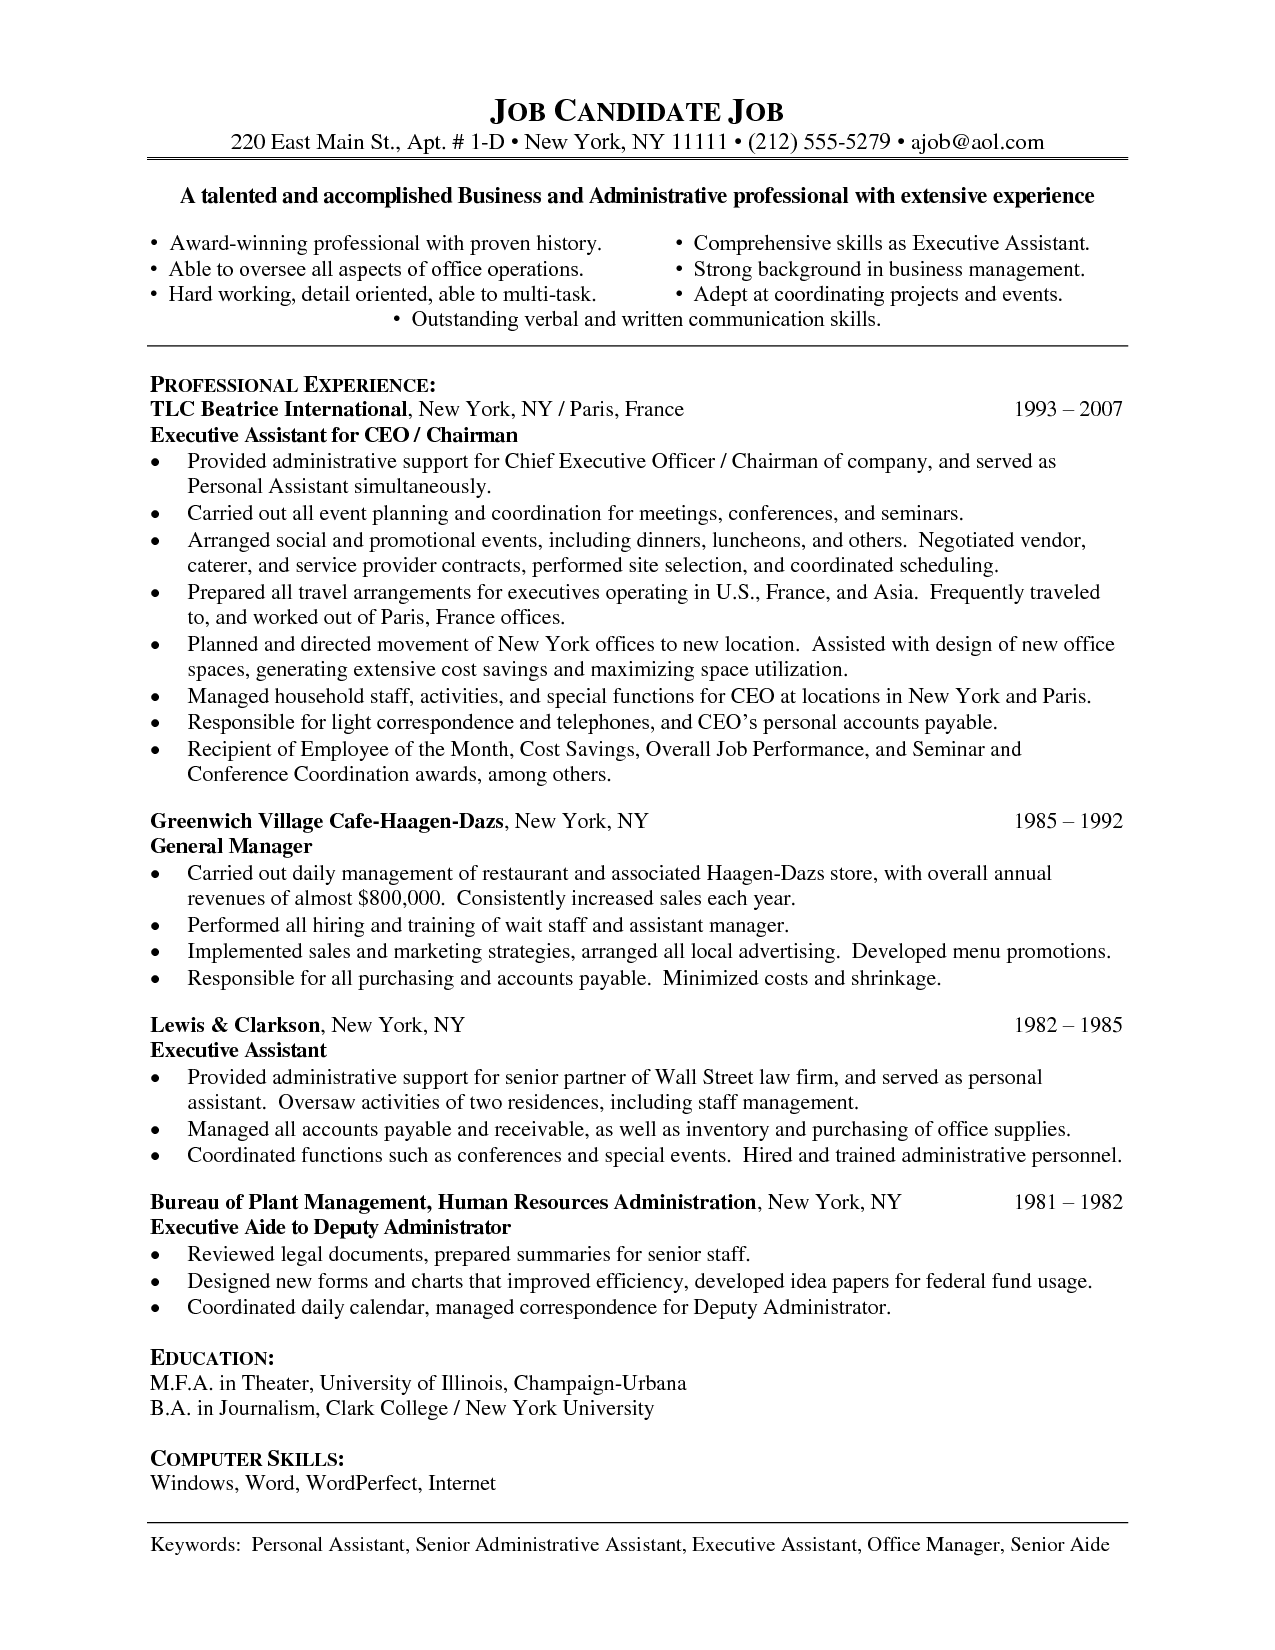 Purchasing Assistant Resume Functional Resume Template For Administrative  Assistant Word S .